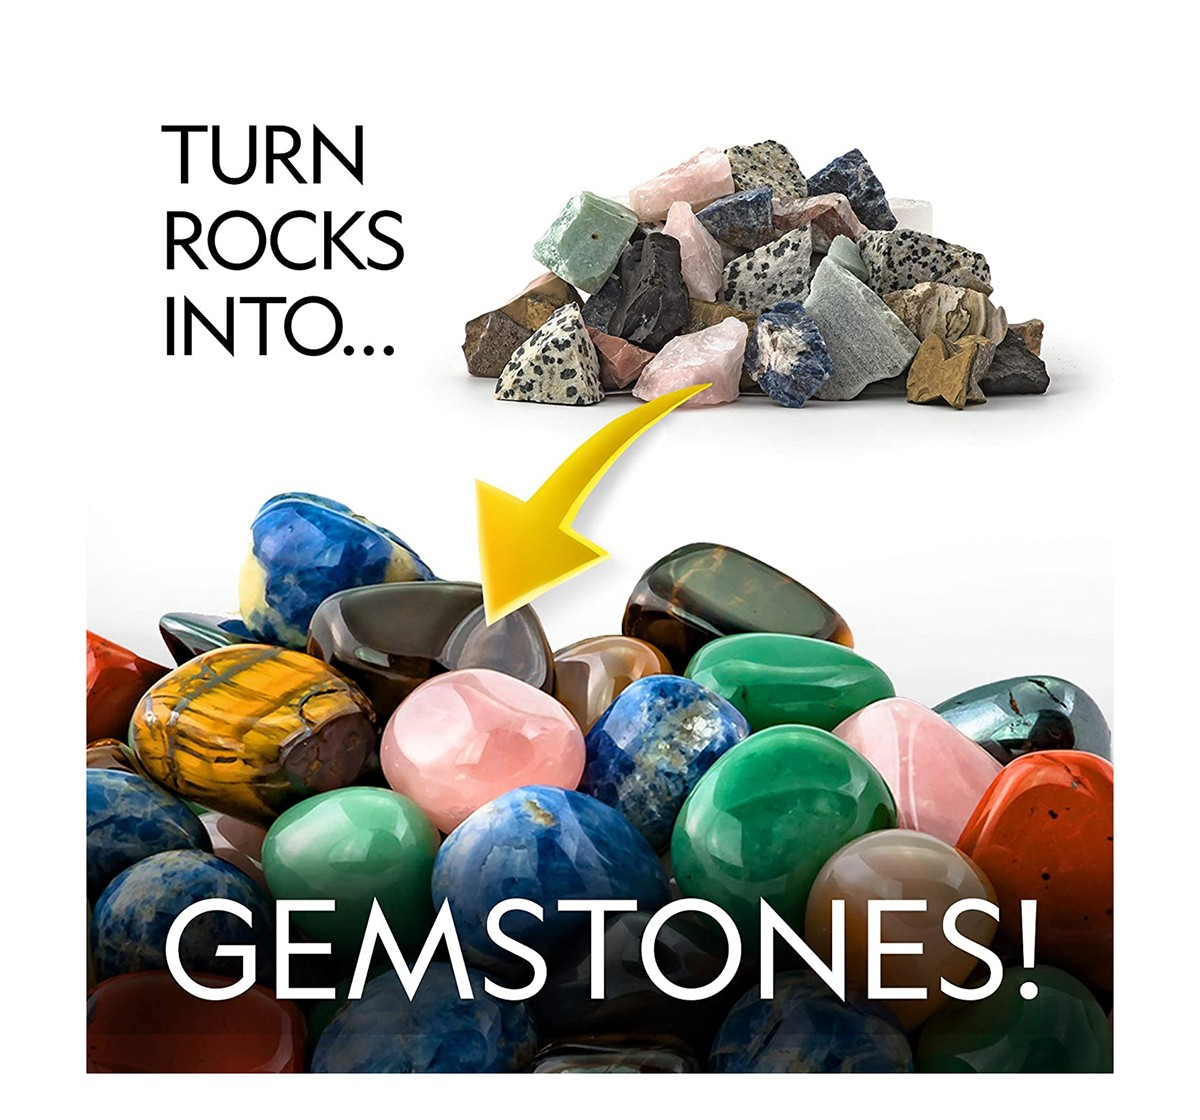 National Geographic Rough Gemstone Refill Kit For Rock Tumbler for Kids age 6Y+